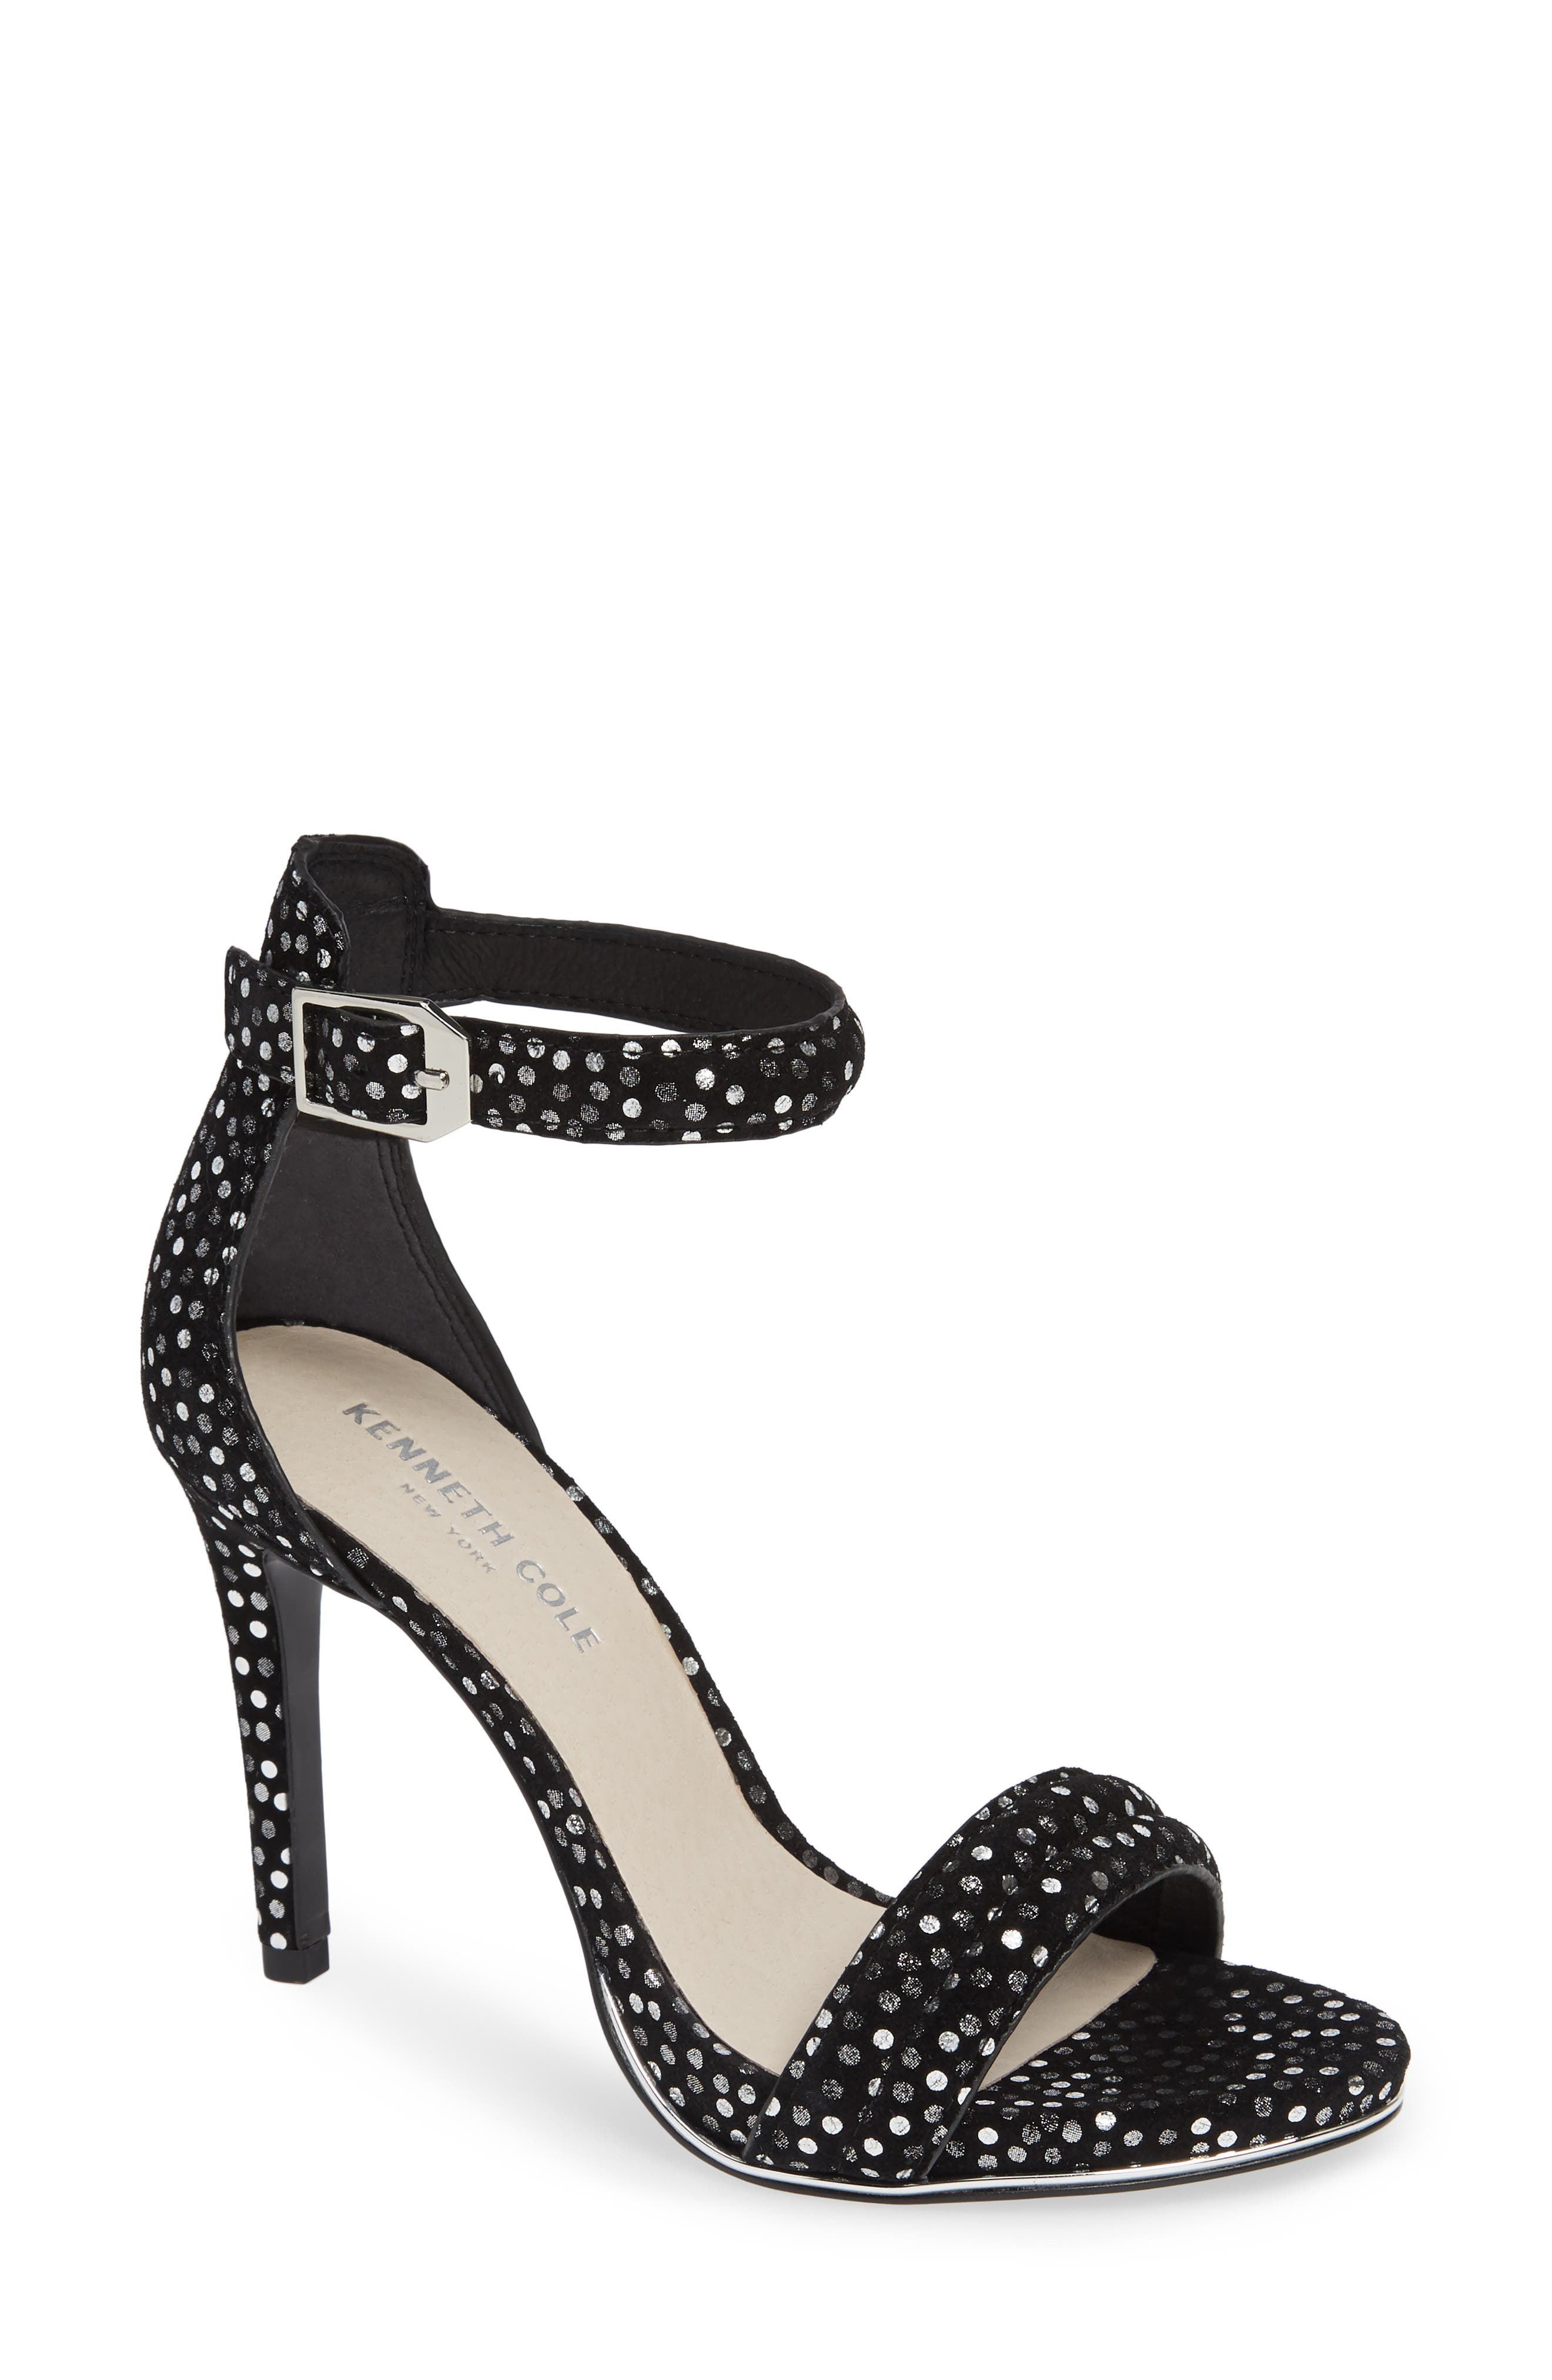 'Brooke' Sandal, Main, color, BLACK/ SILVER SUEDE